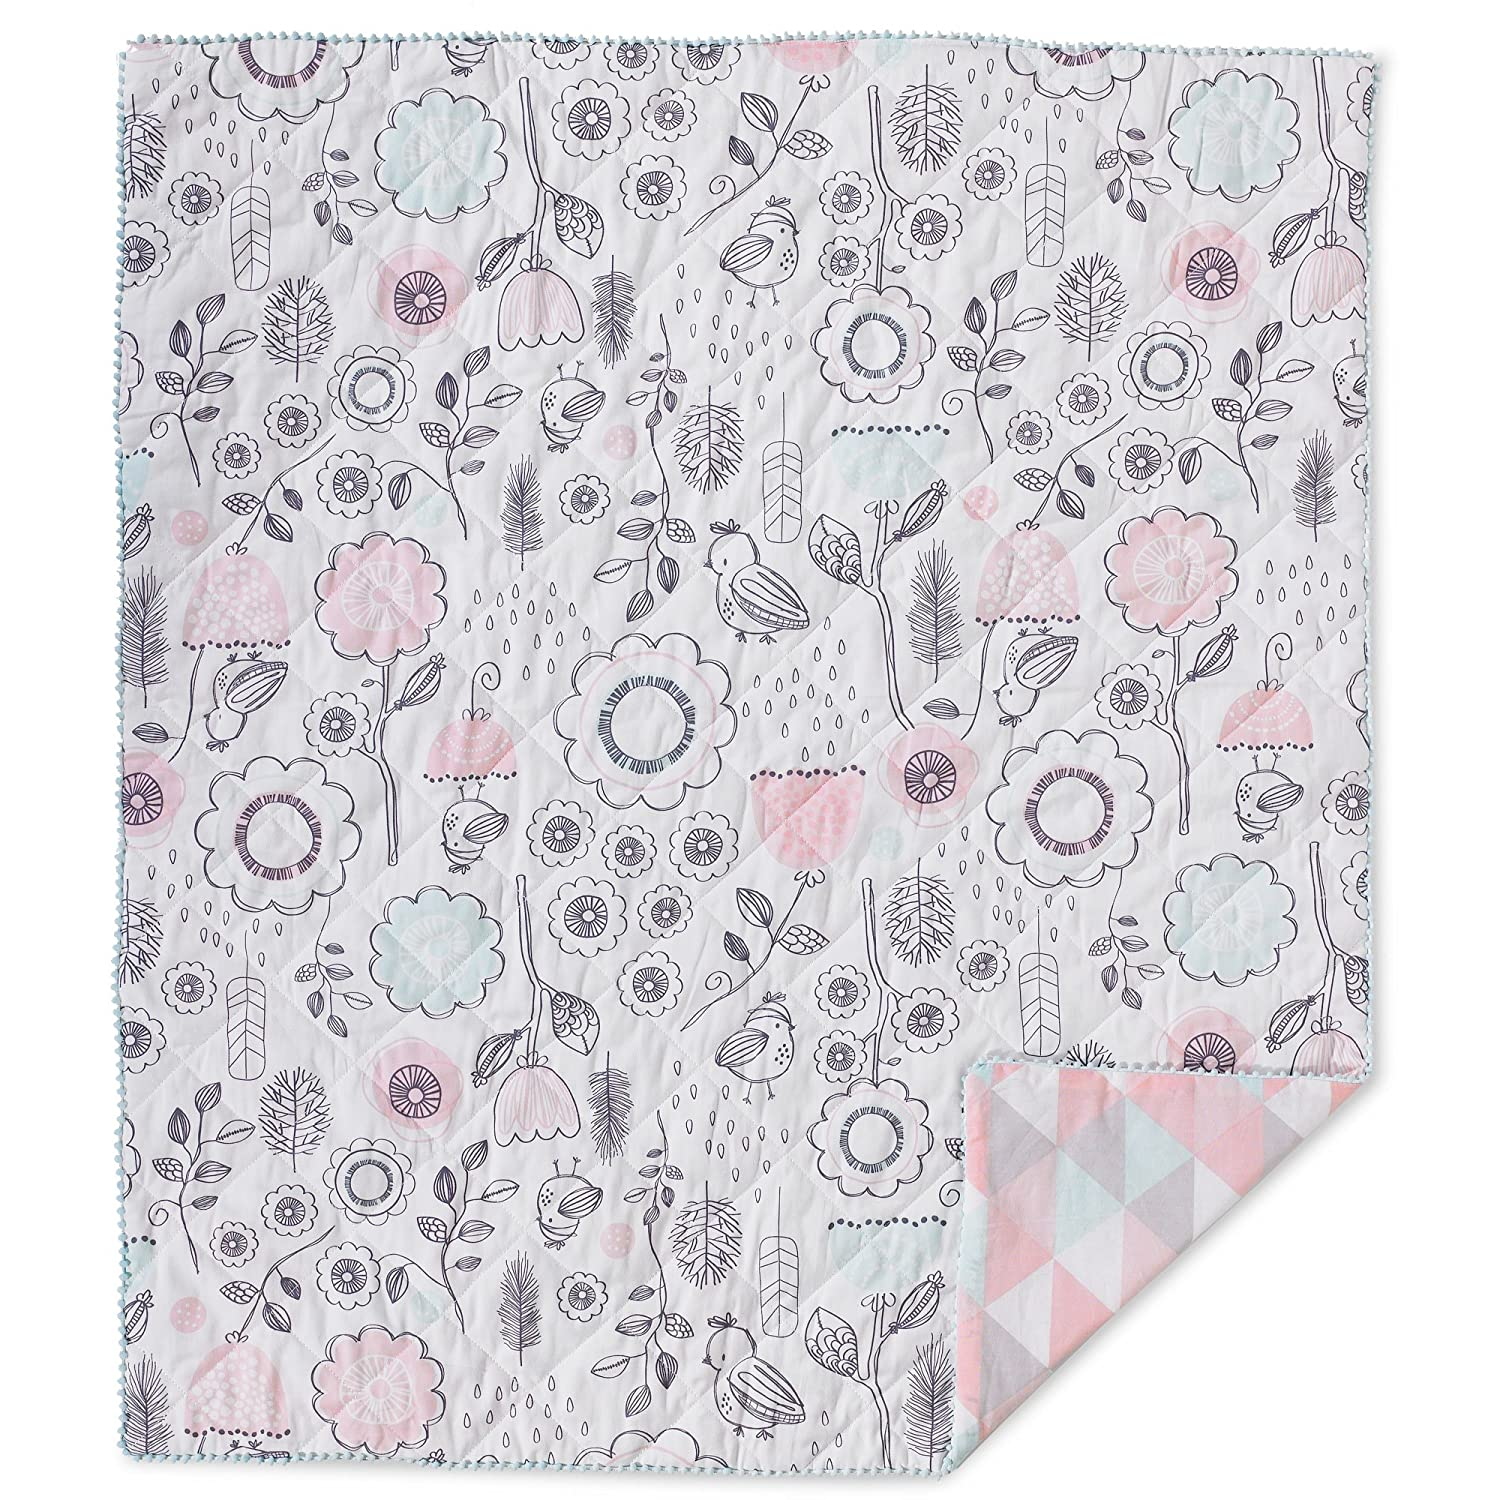 Lolli Living Baby Quilted Comforter in Sparrow. Modern Quilted Baby Blanket (Sparrow Print).